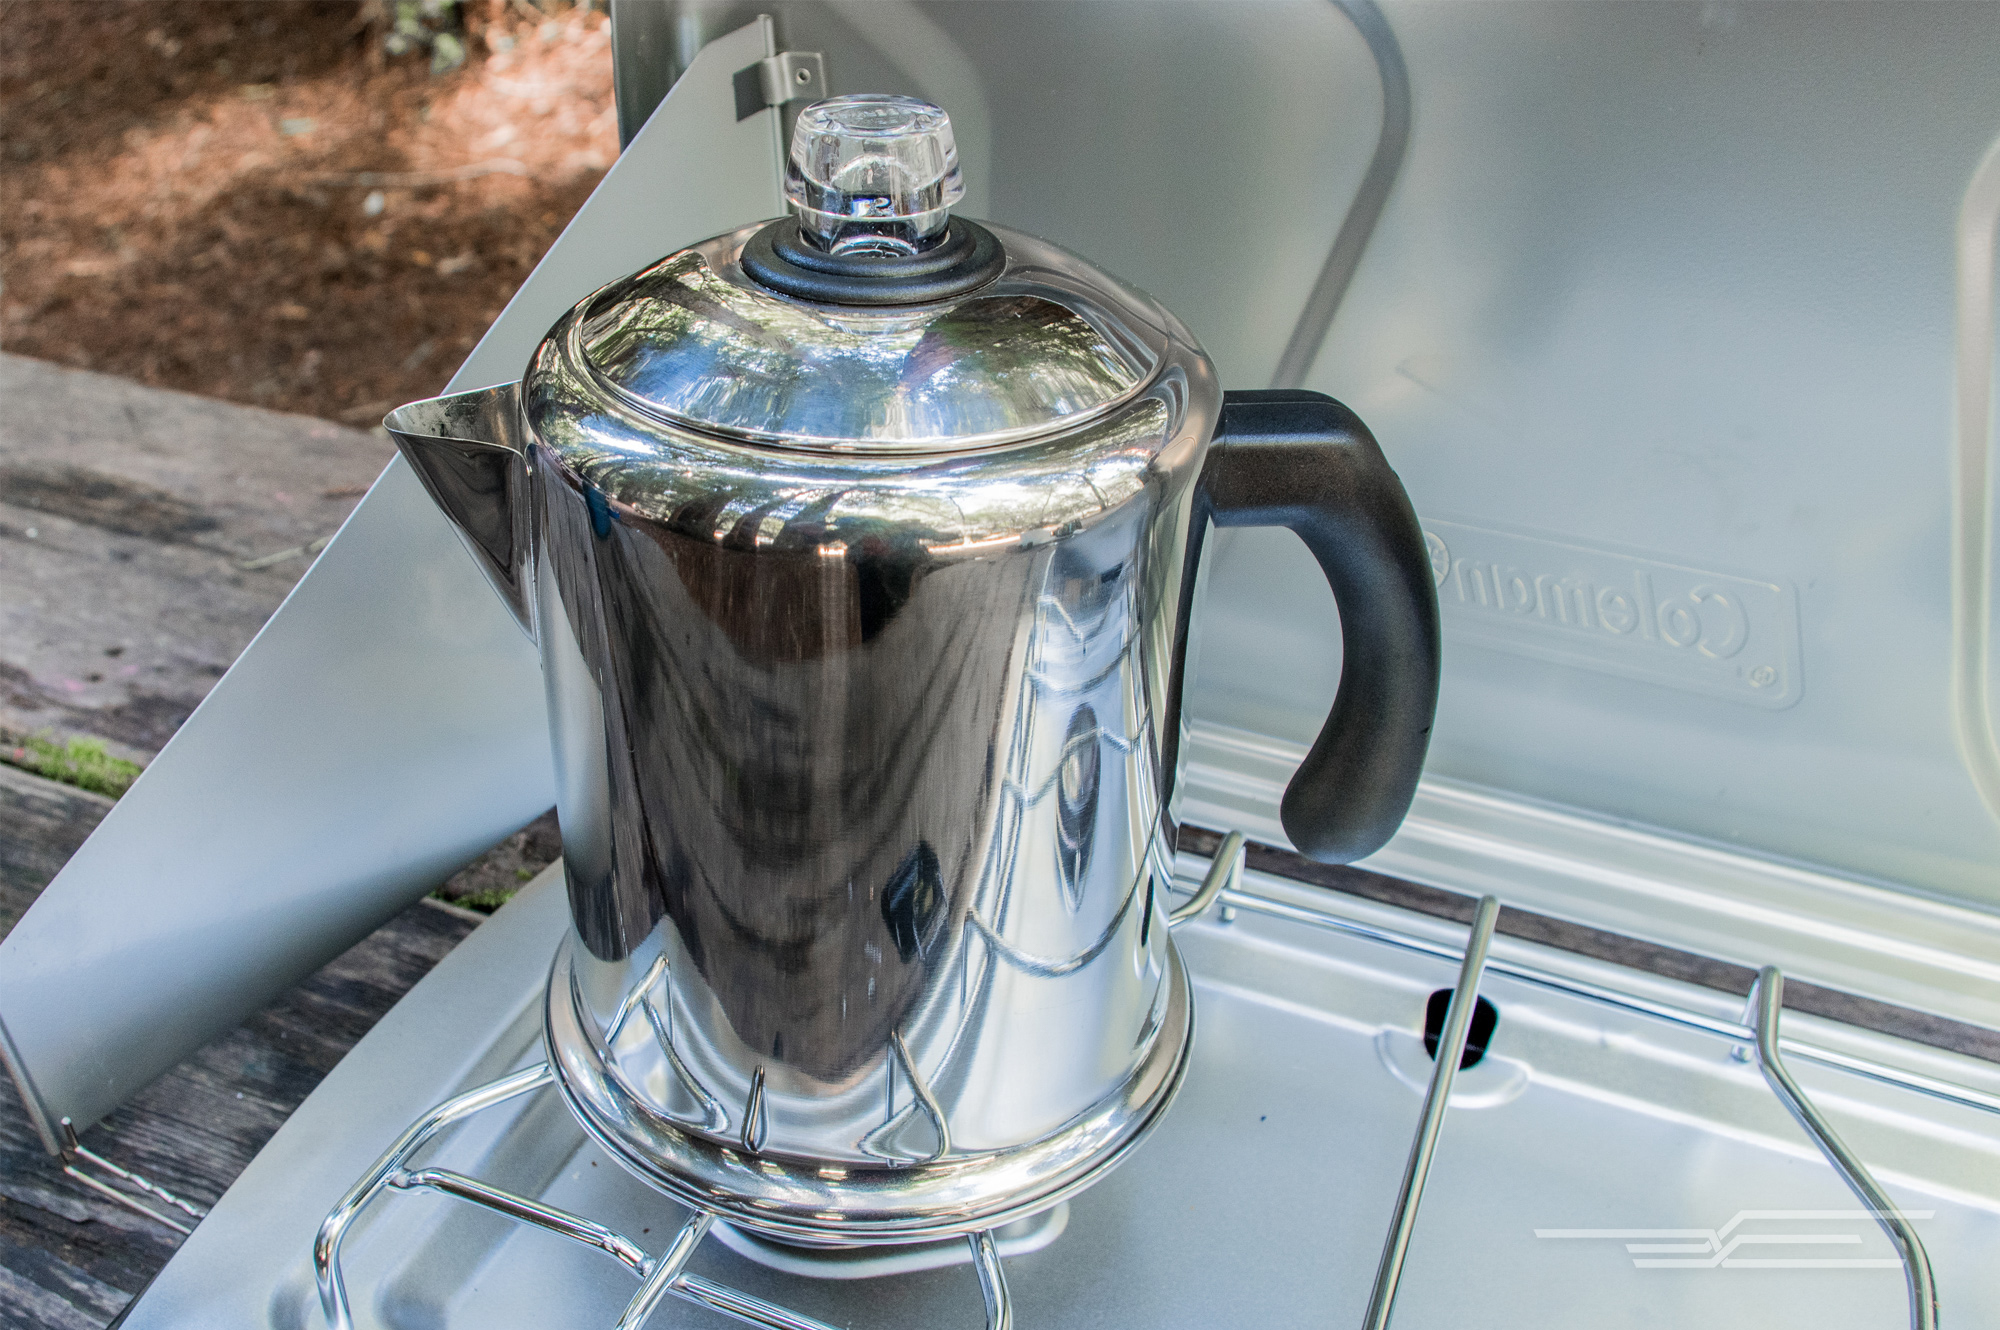 Best Percolator Coffee Maker For Camping : The best coffee maker for camping